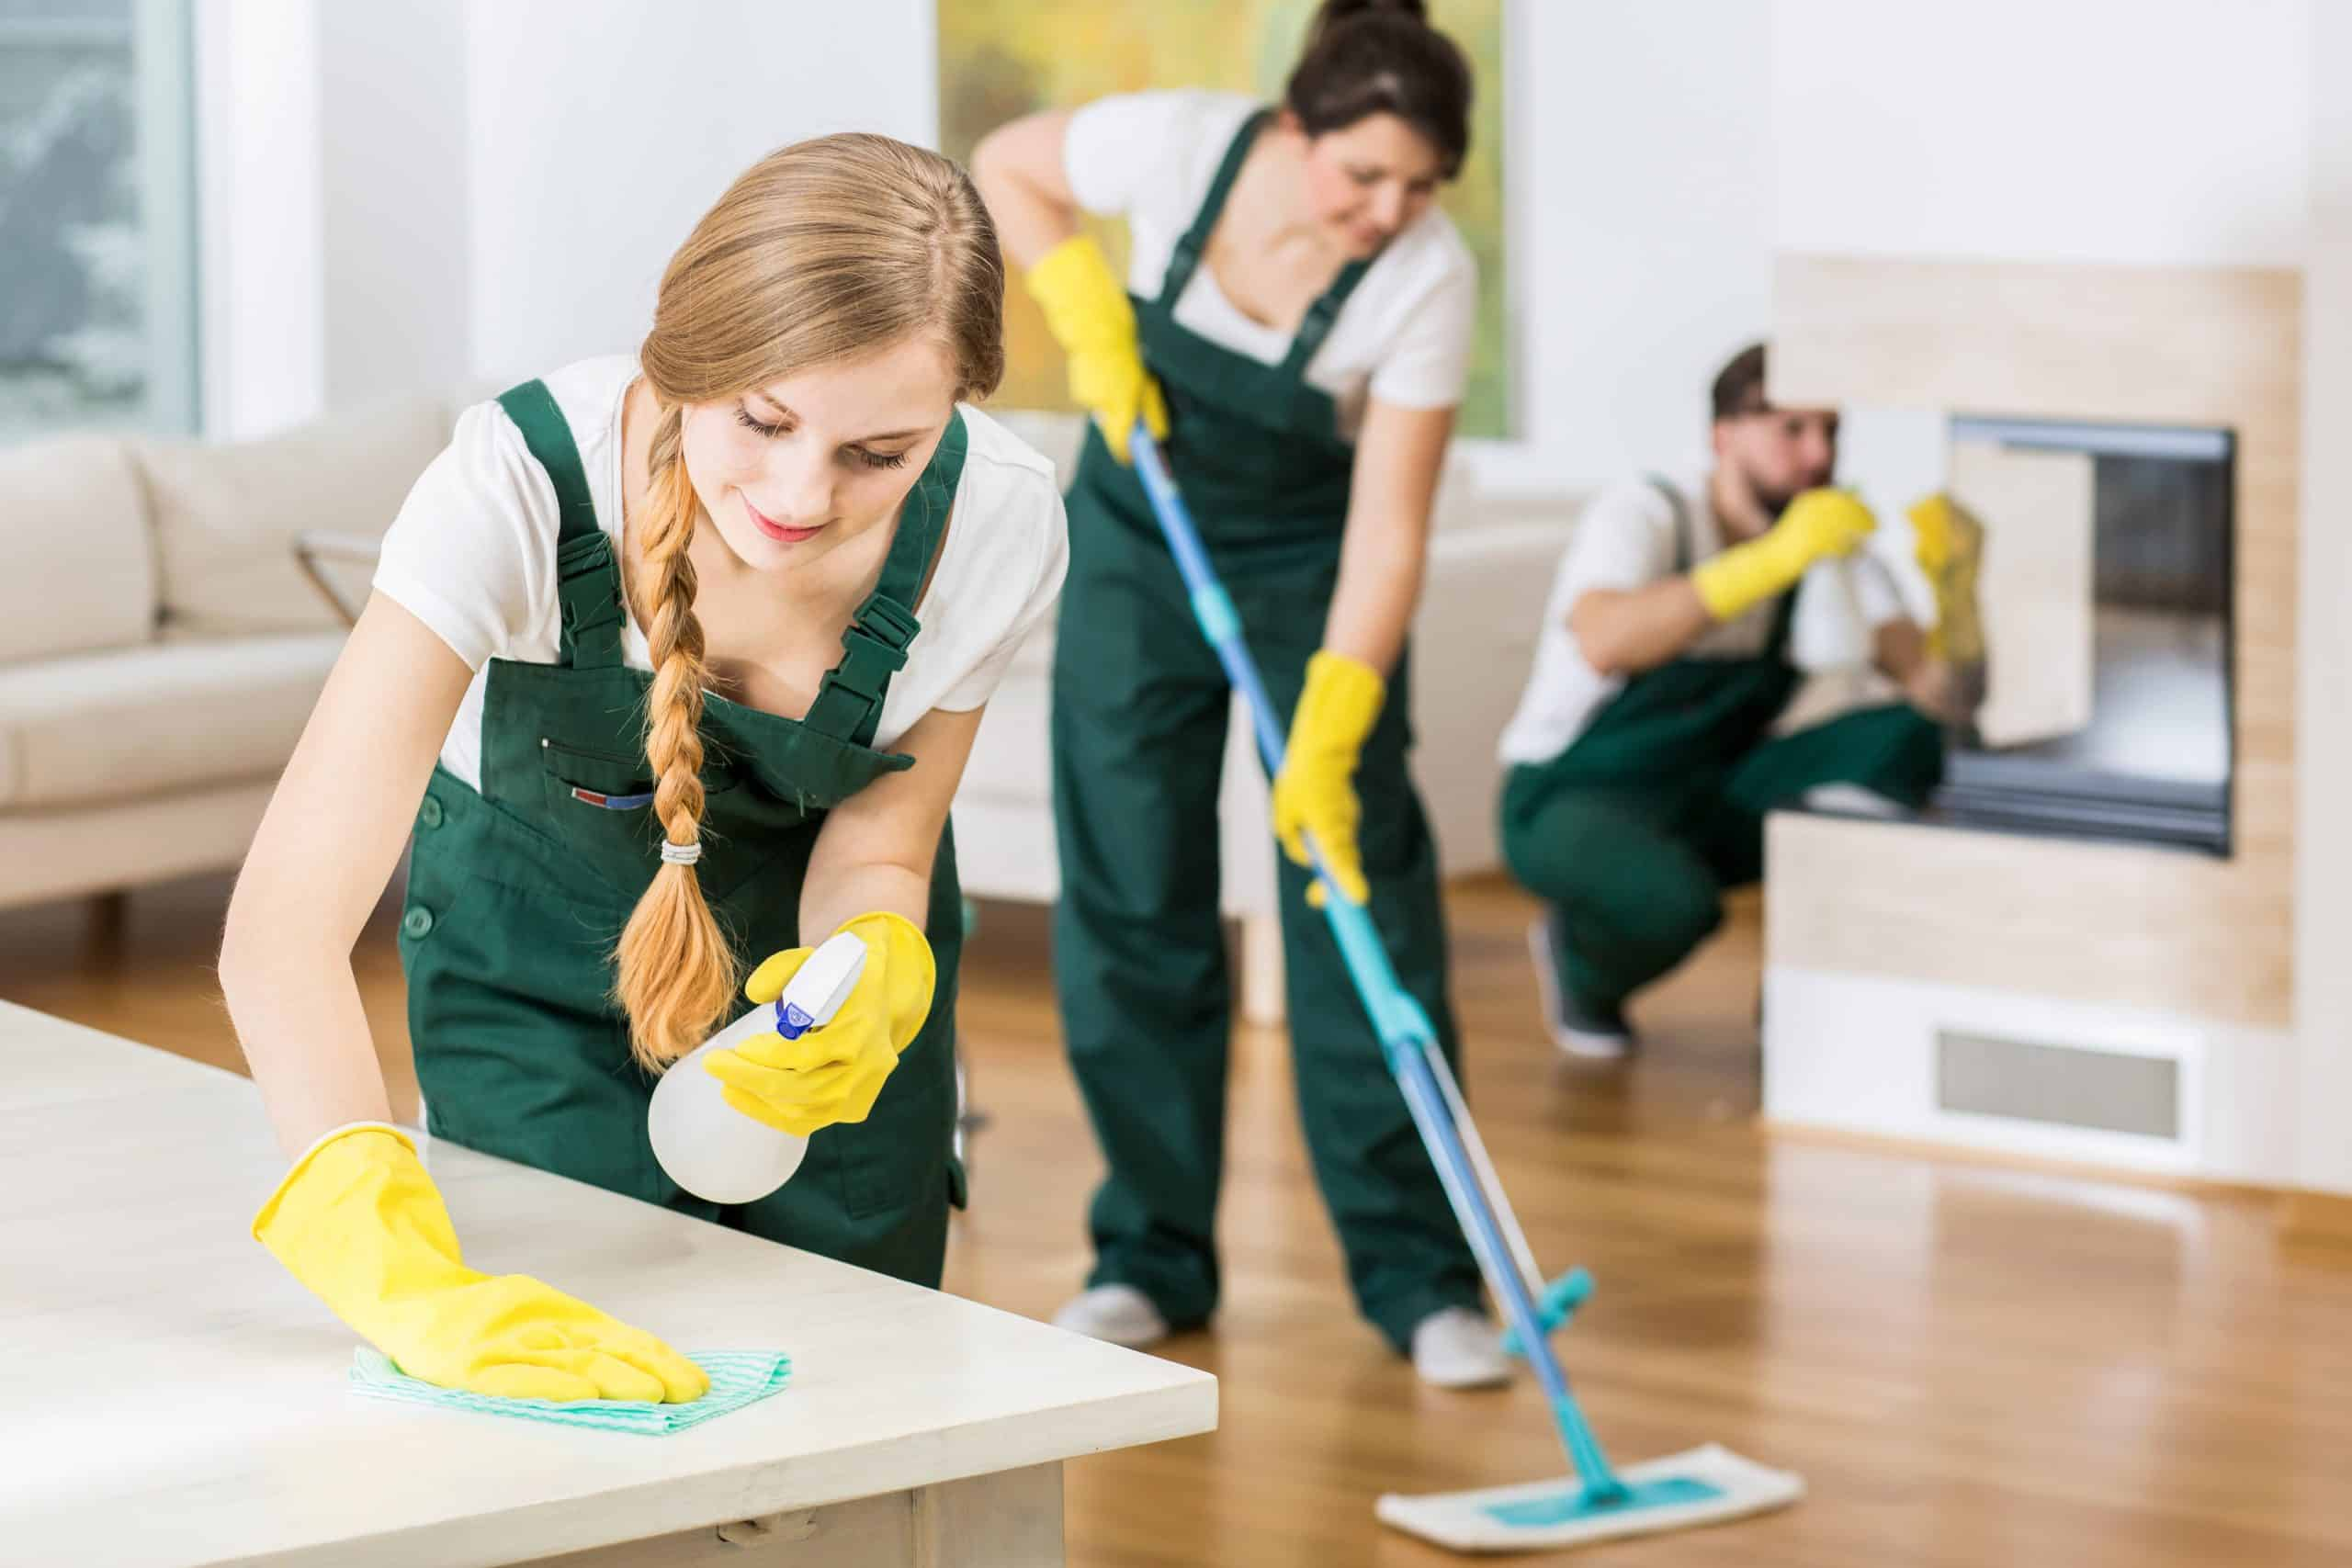 Spend time to save money - Team of 3 house cleaners in green overalls clean a living room